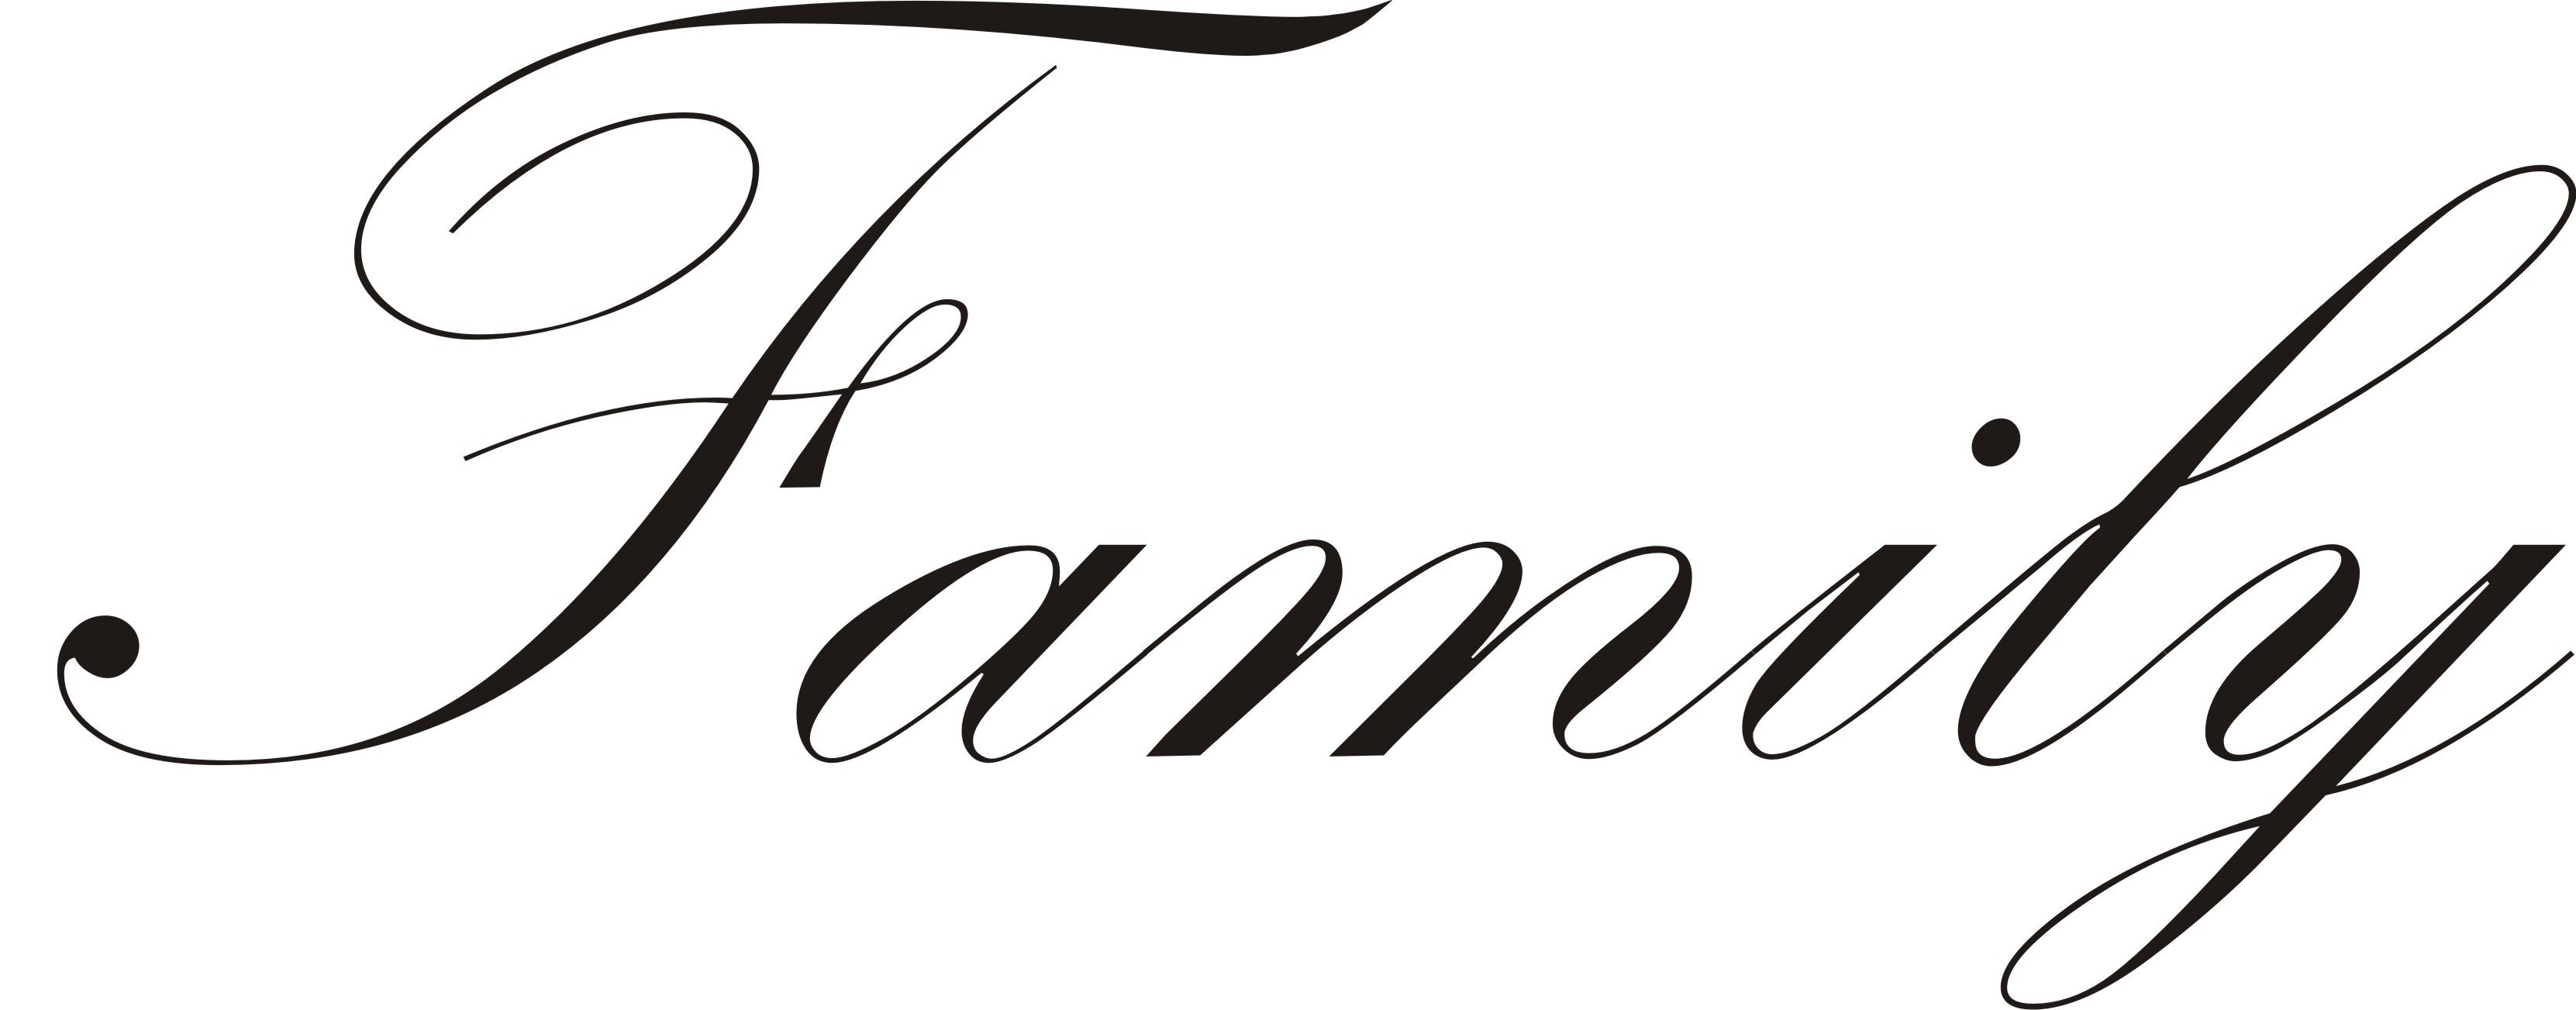 Family Word Tumblr Google Search Tattoo Fonts Cursive Tattoo Fonts Family Word Art